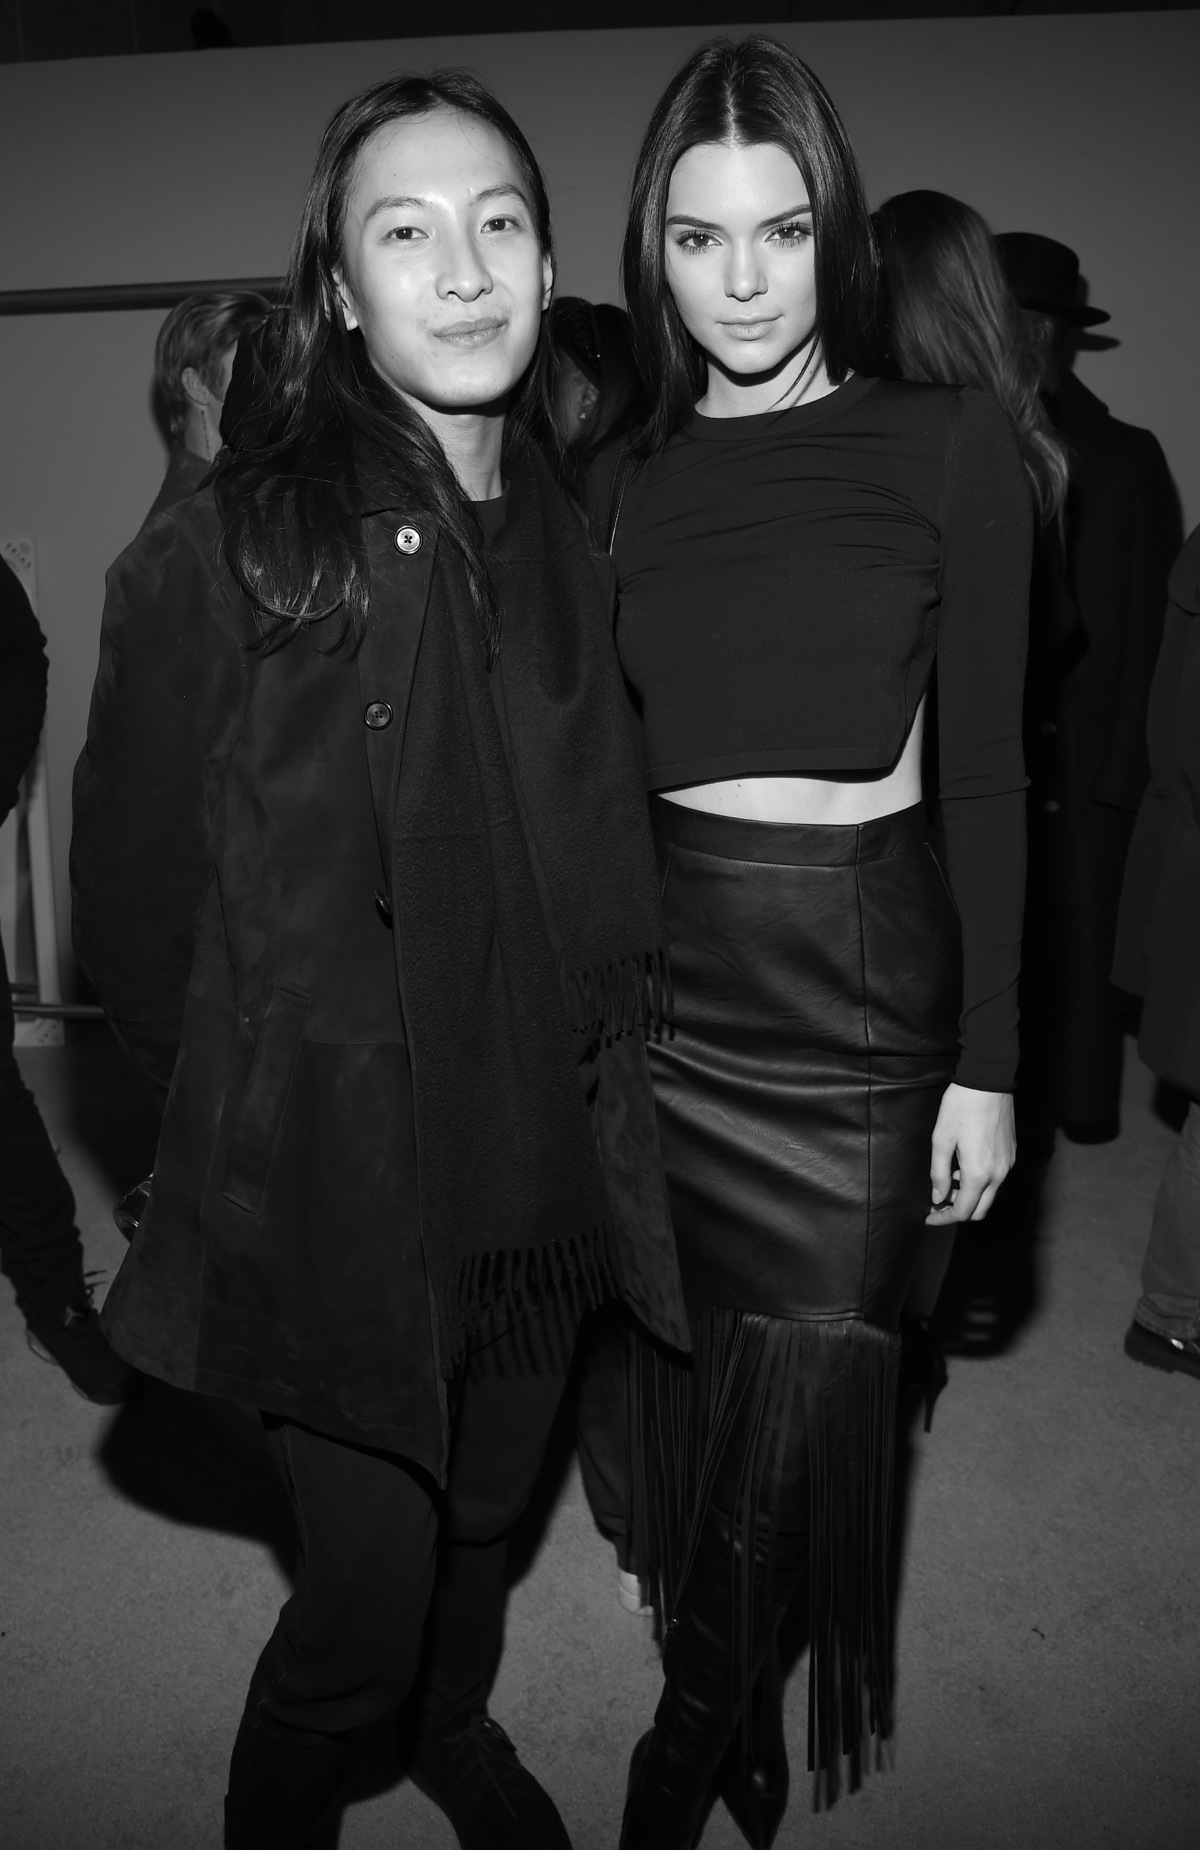 Alexander Wang and Kendall Jenner pose backstage at the adidas Originals x Kanye West YEEZY SEASON 1 fashion show